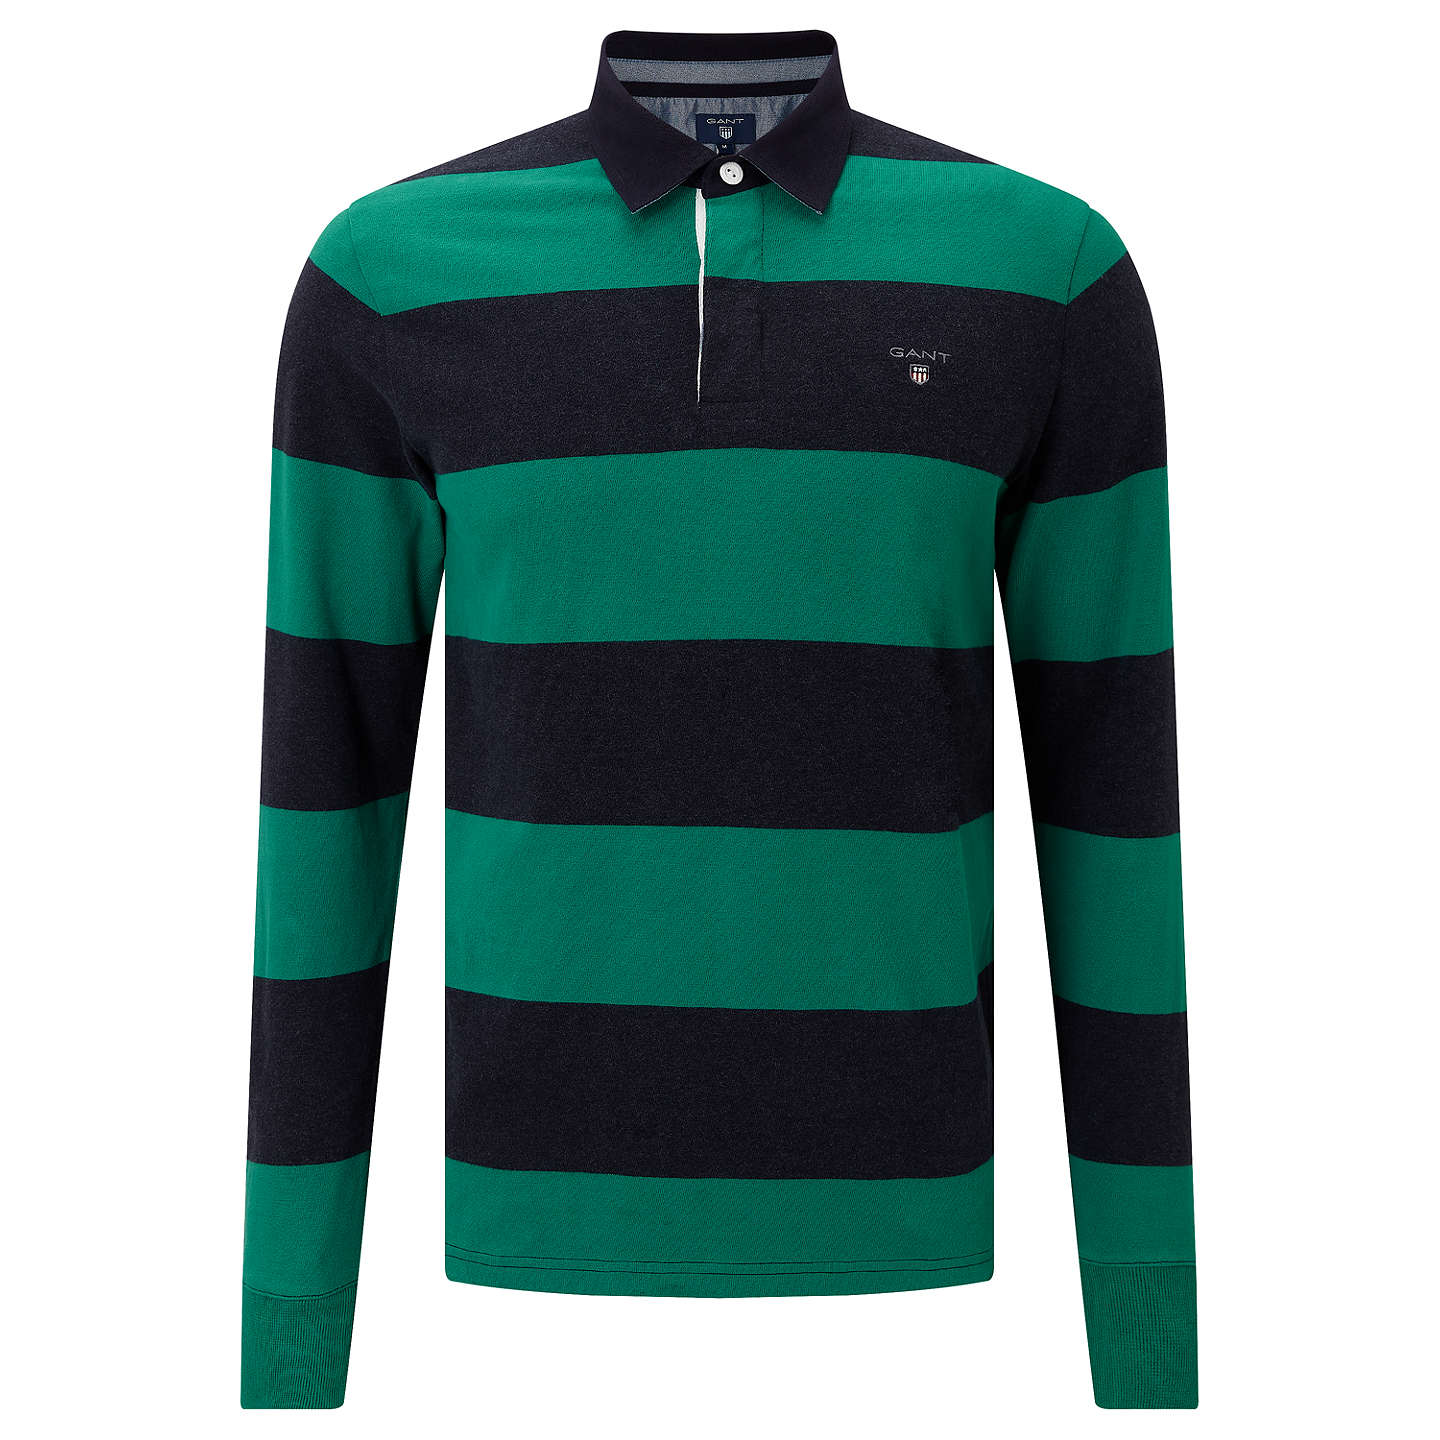 BuyGANT Rugger Bar Stripe Heavy Jersey Rugby Shirt, Emerald Green, M Online at johnlewis.com